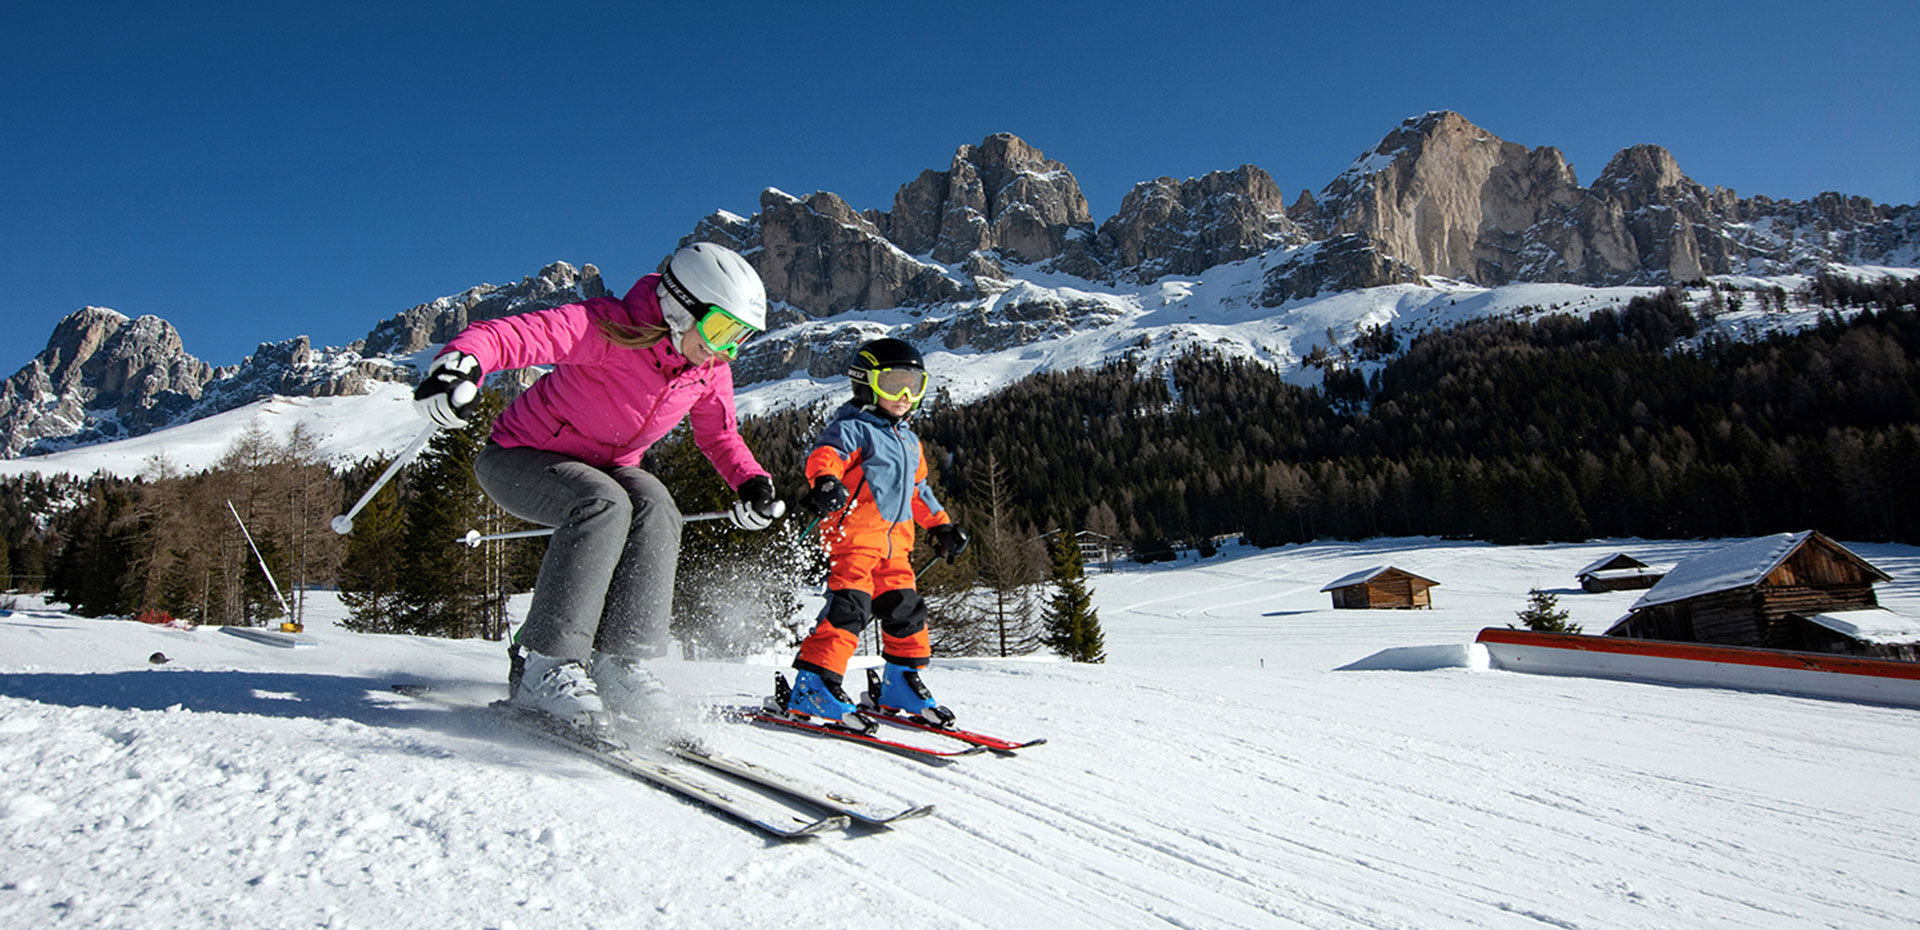 Ski Resort Carezza  in the Dolomites